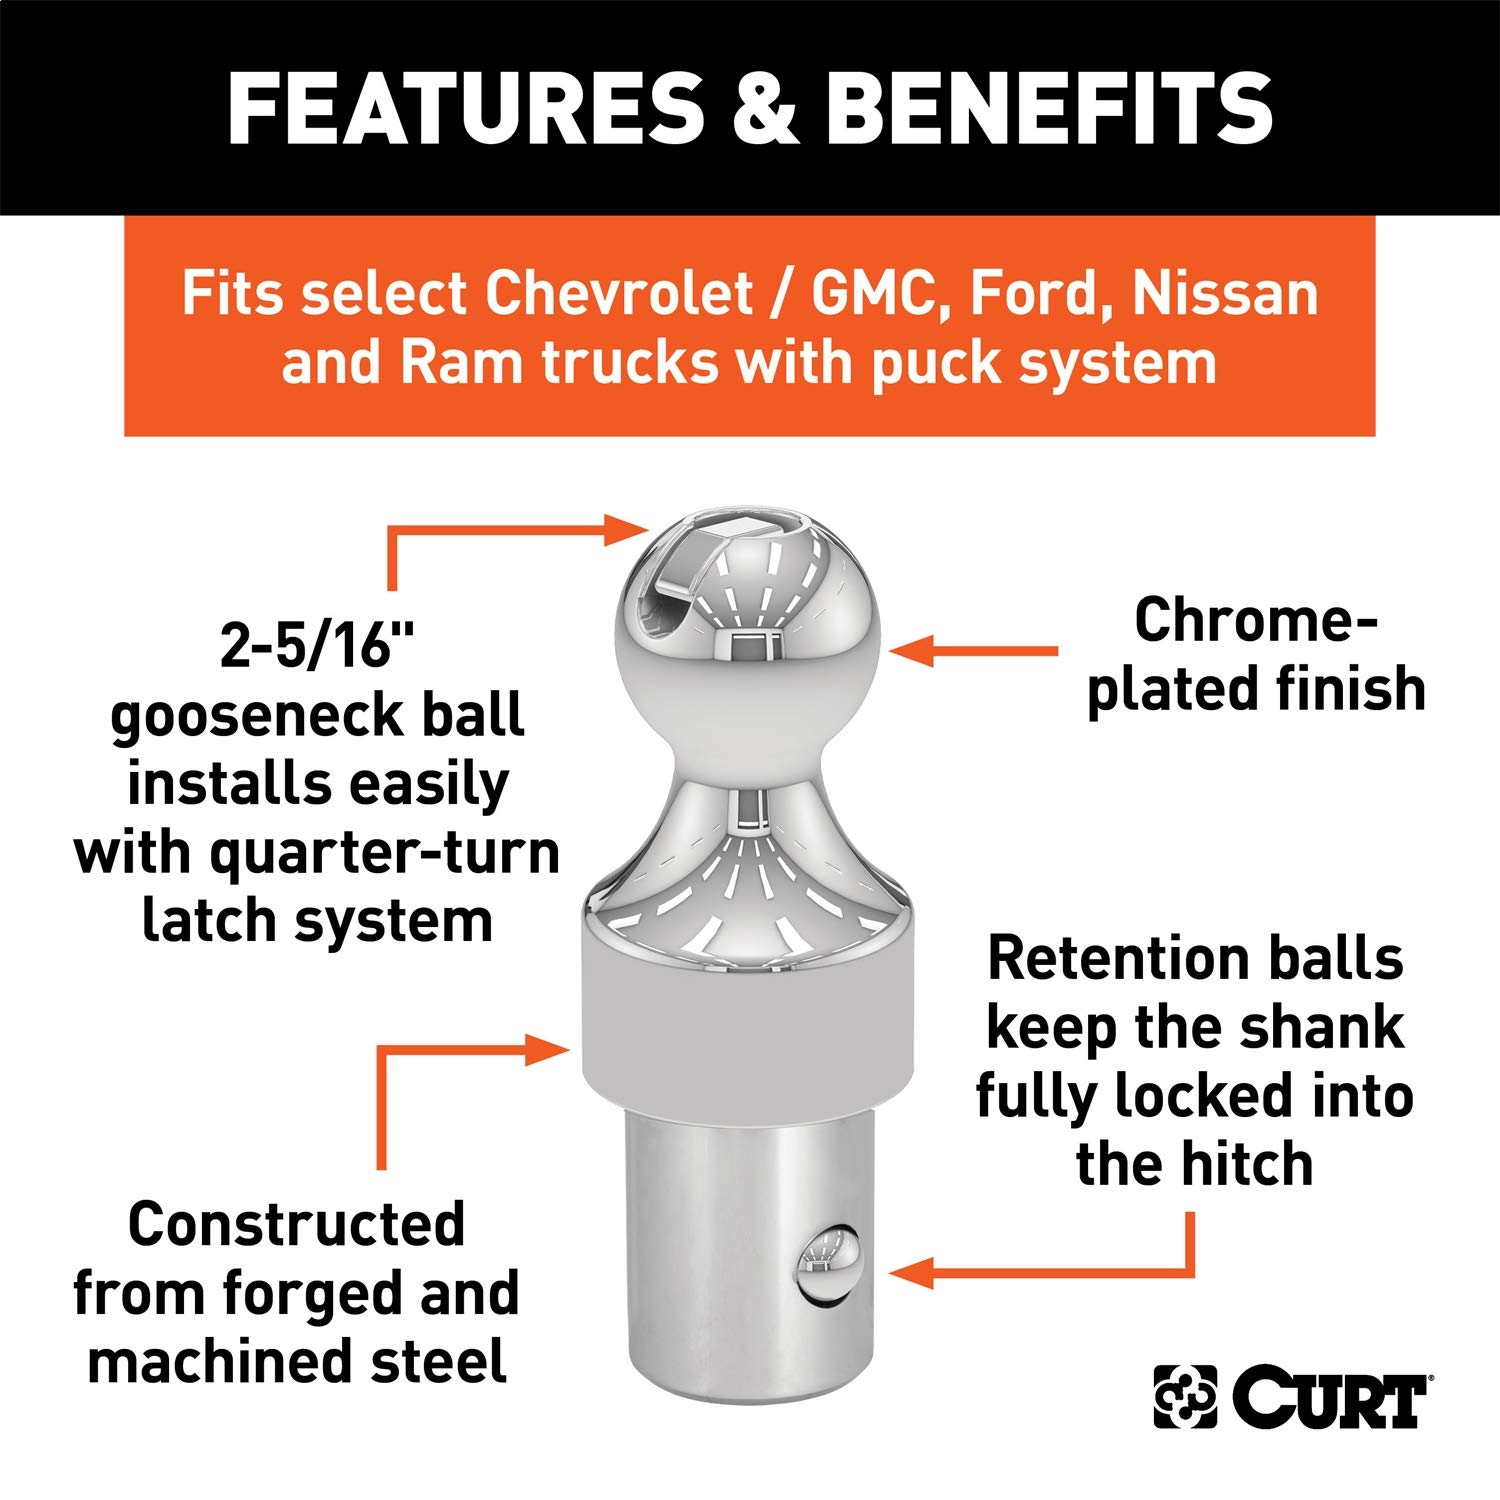 CURT 60629 OEM Puck System 2-5/16-Inch Gooseneck Ball for Chevrolet, Ford, GMC, Nissan, Ram Trucks, 30,000 lbs. GTW, OEM Puck System Required by CURT